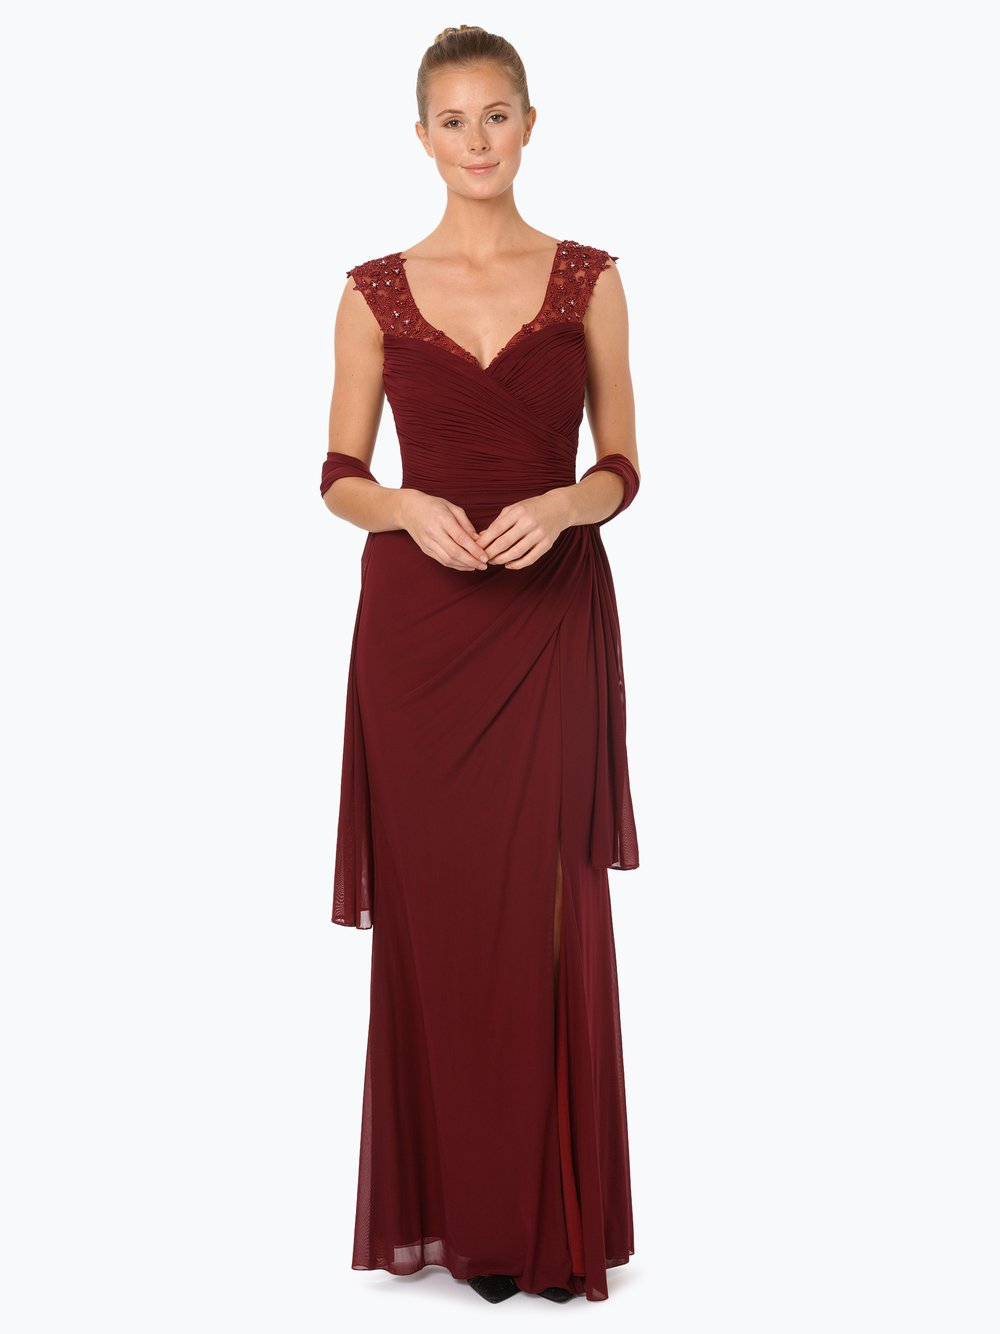 Luxuar Fashion Damen Abendkleid mit Stola bordeaux uni online kaufen ...